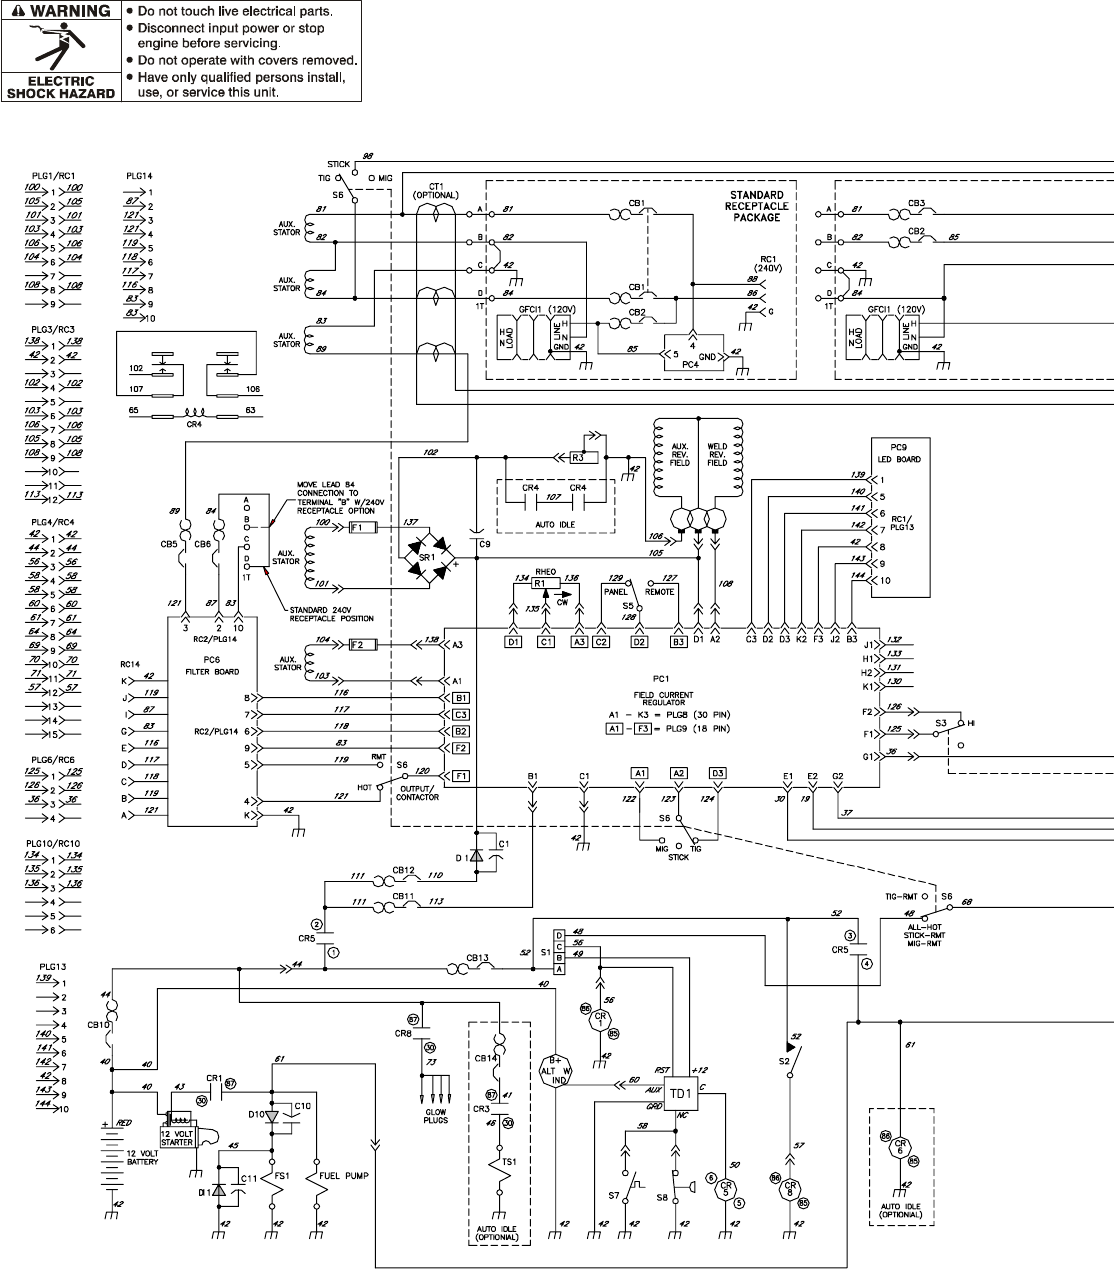 welder wiring diagram welder image wiring diagram miller welder wiring diagram miller wiring diagrams on welder wiring diagram